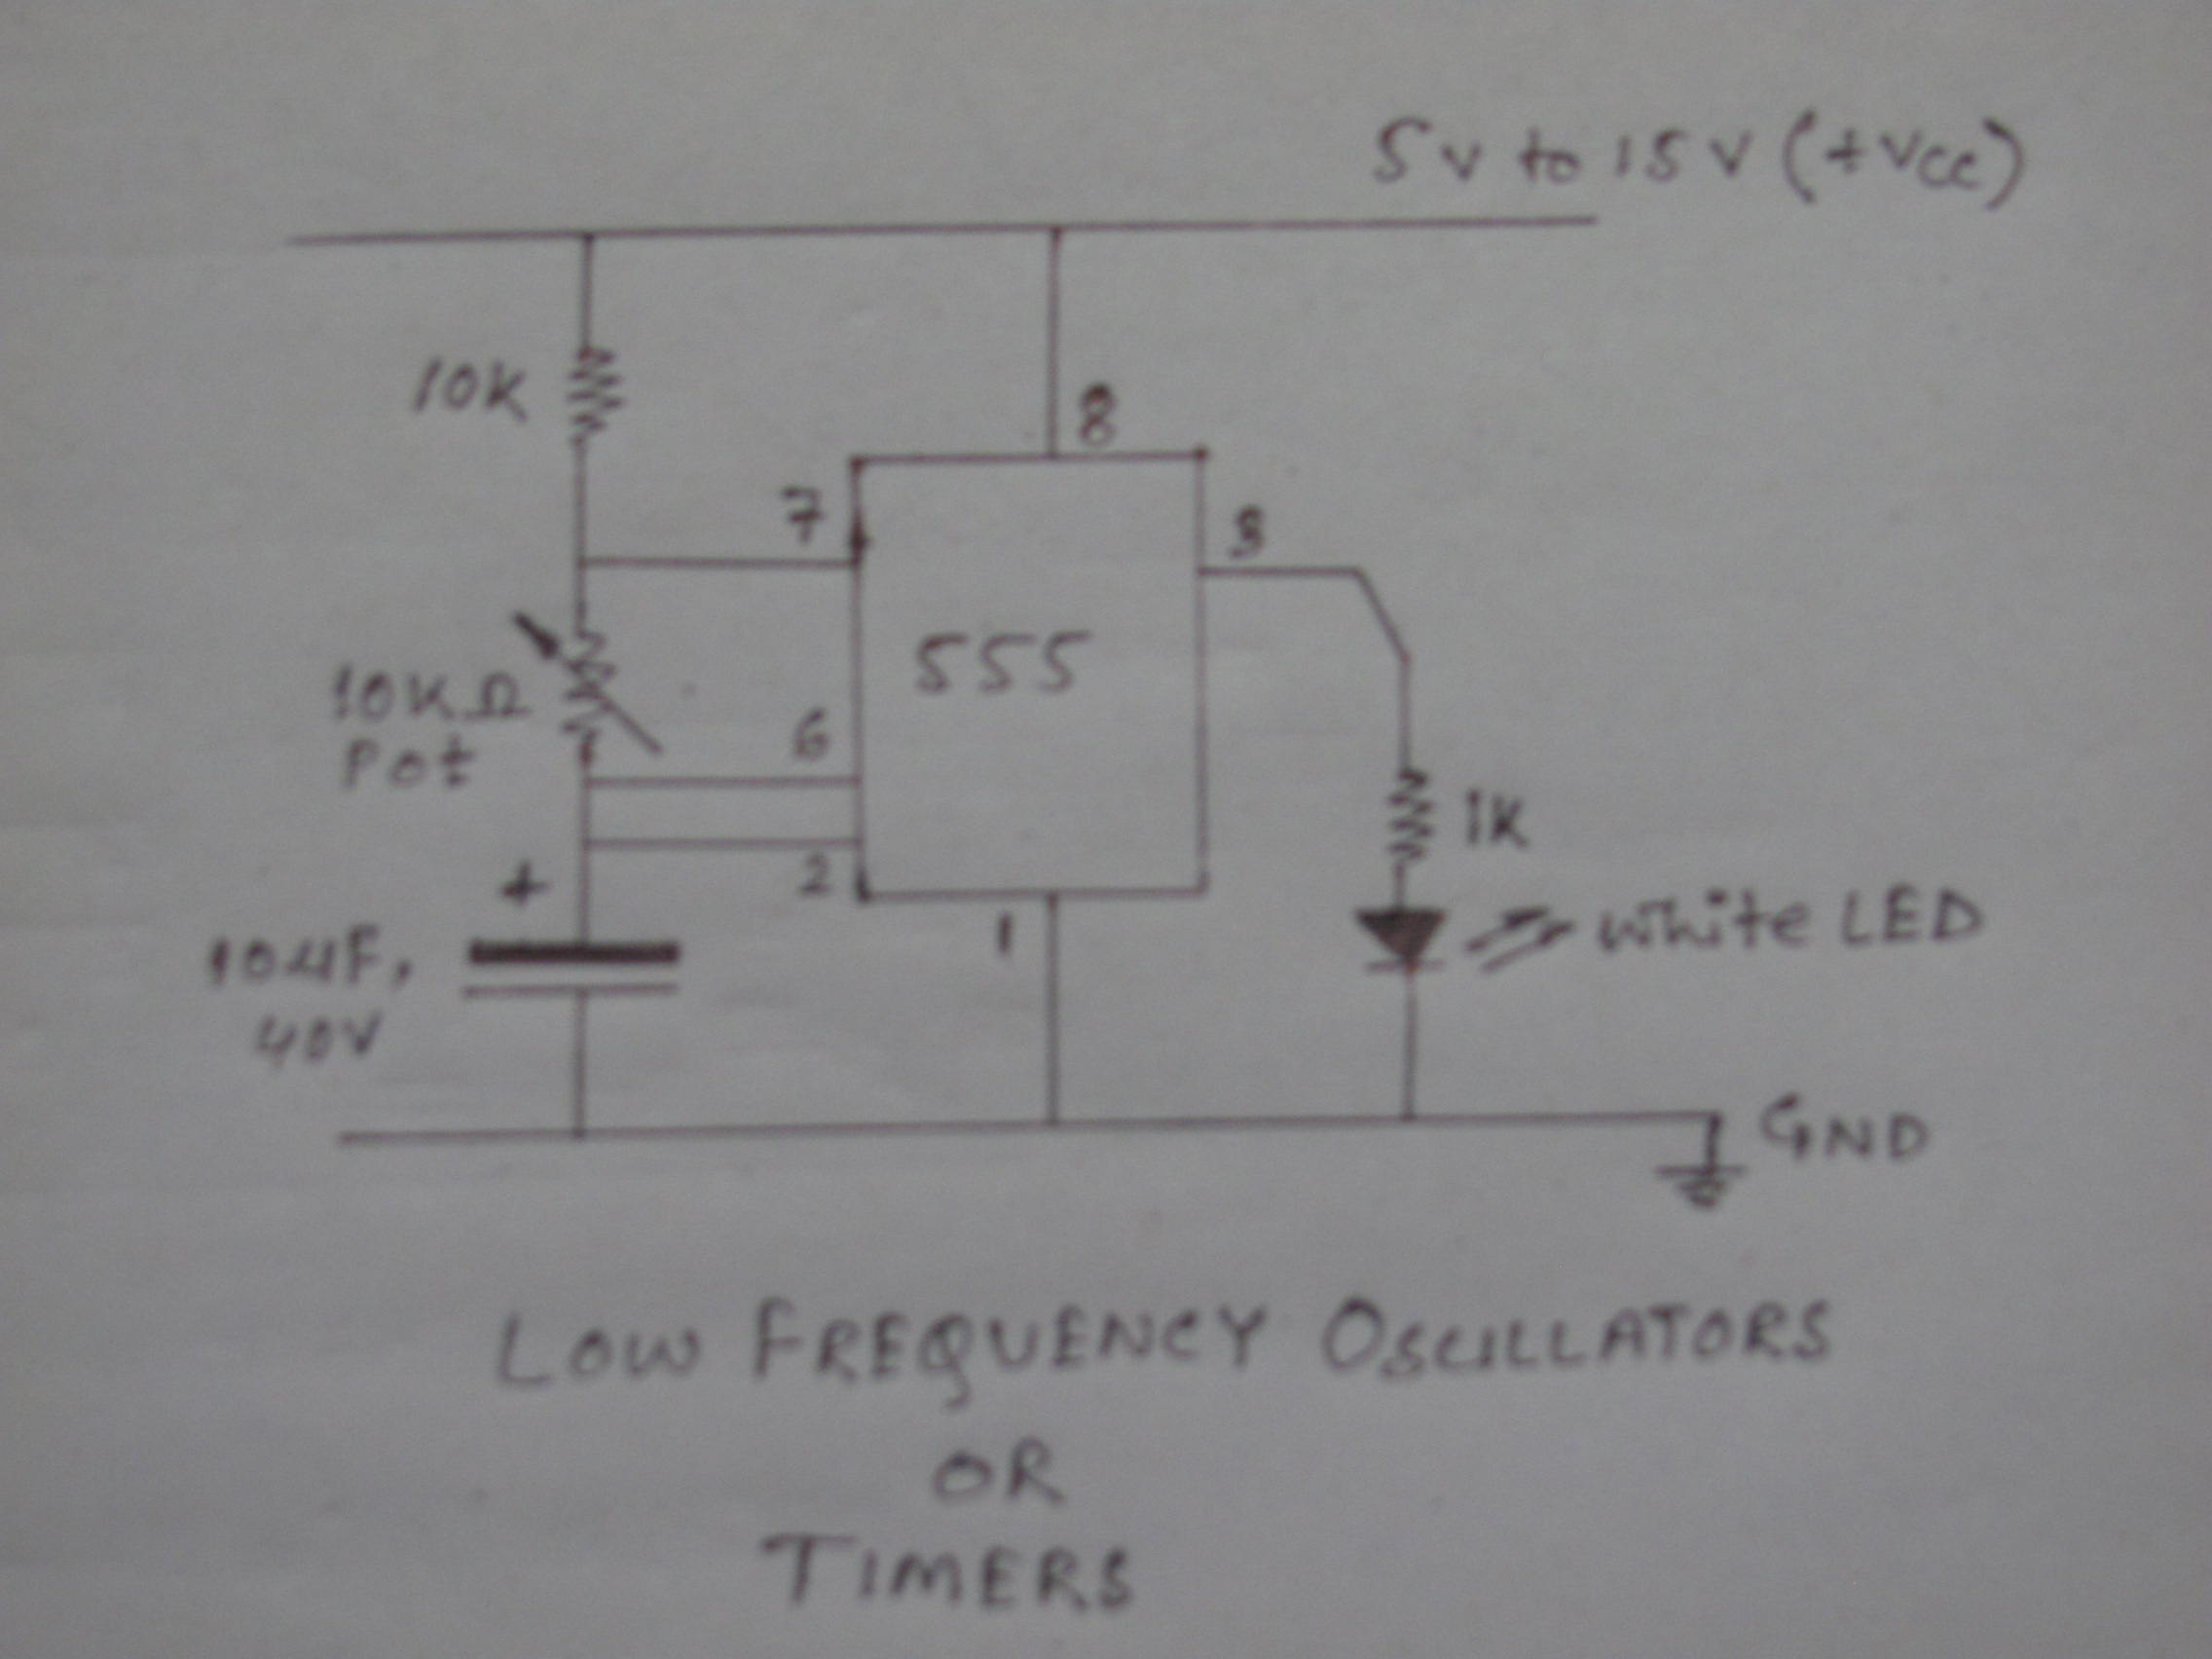 why it is called 555 timer craftronixlab